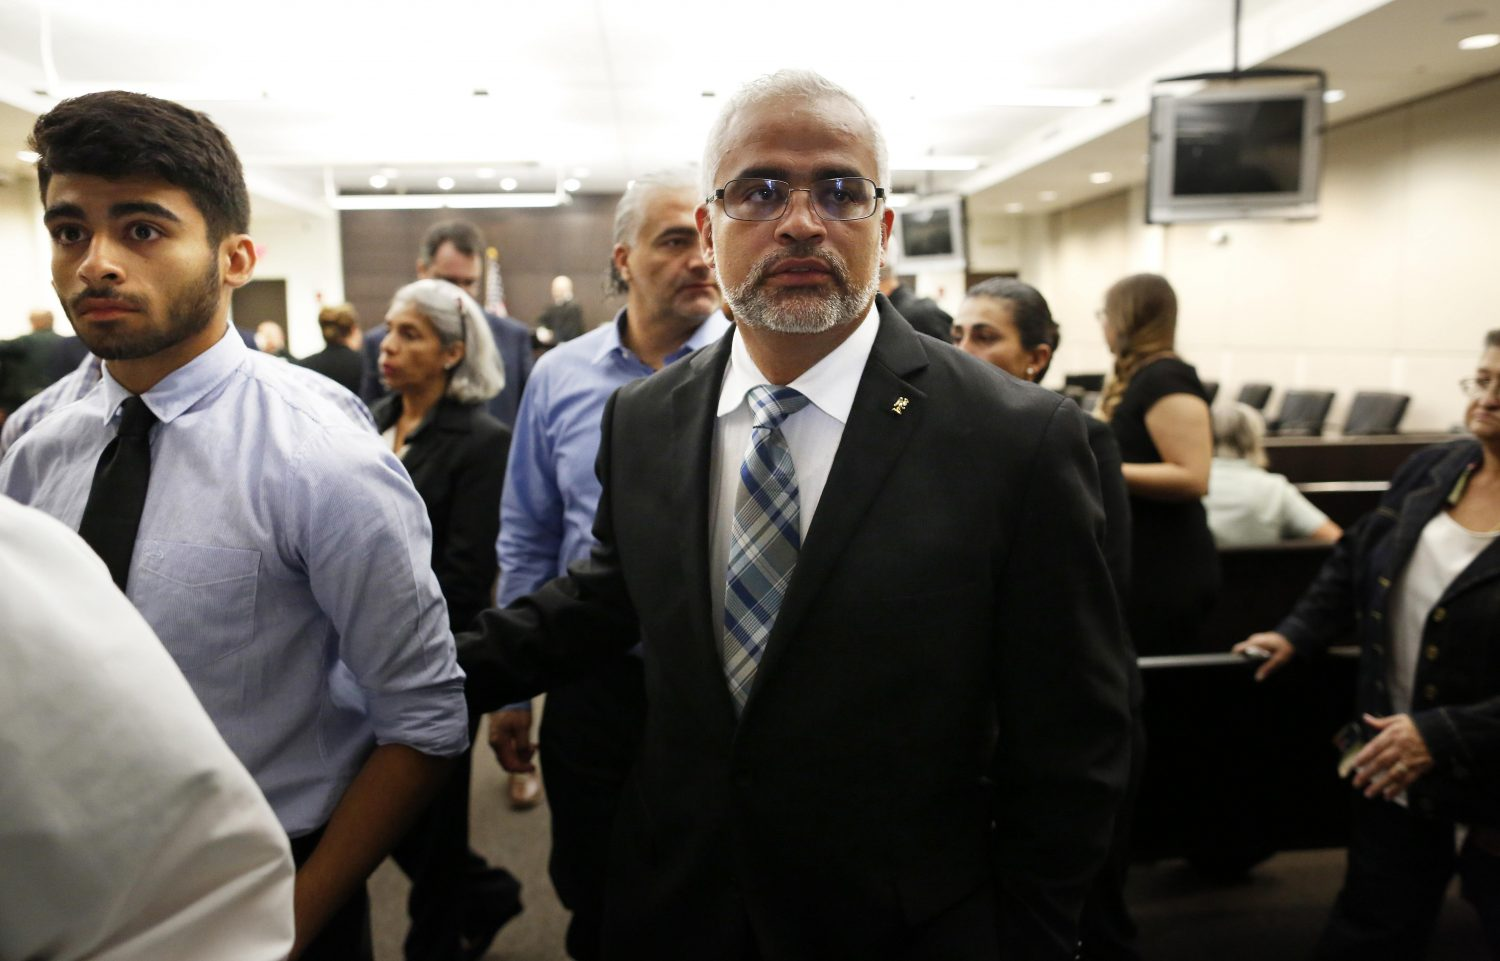 Carlos Aguilar, the father of Christian Aguilar, leaves the courtroom with his son Alex for a lunch recess following the prosecution's  opening statements in the case against Pedro Bravo in courtroom 1B of the Alachua County Criminal Justice Center Tuesday, August 5, 2014.  (Doug Finger/The Gainesville Sun/Pool)